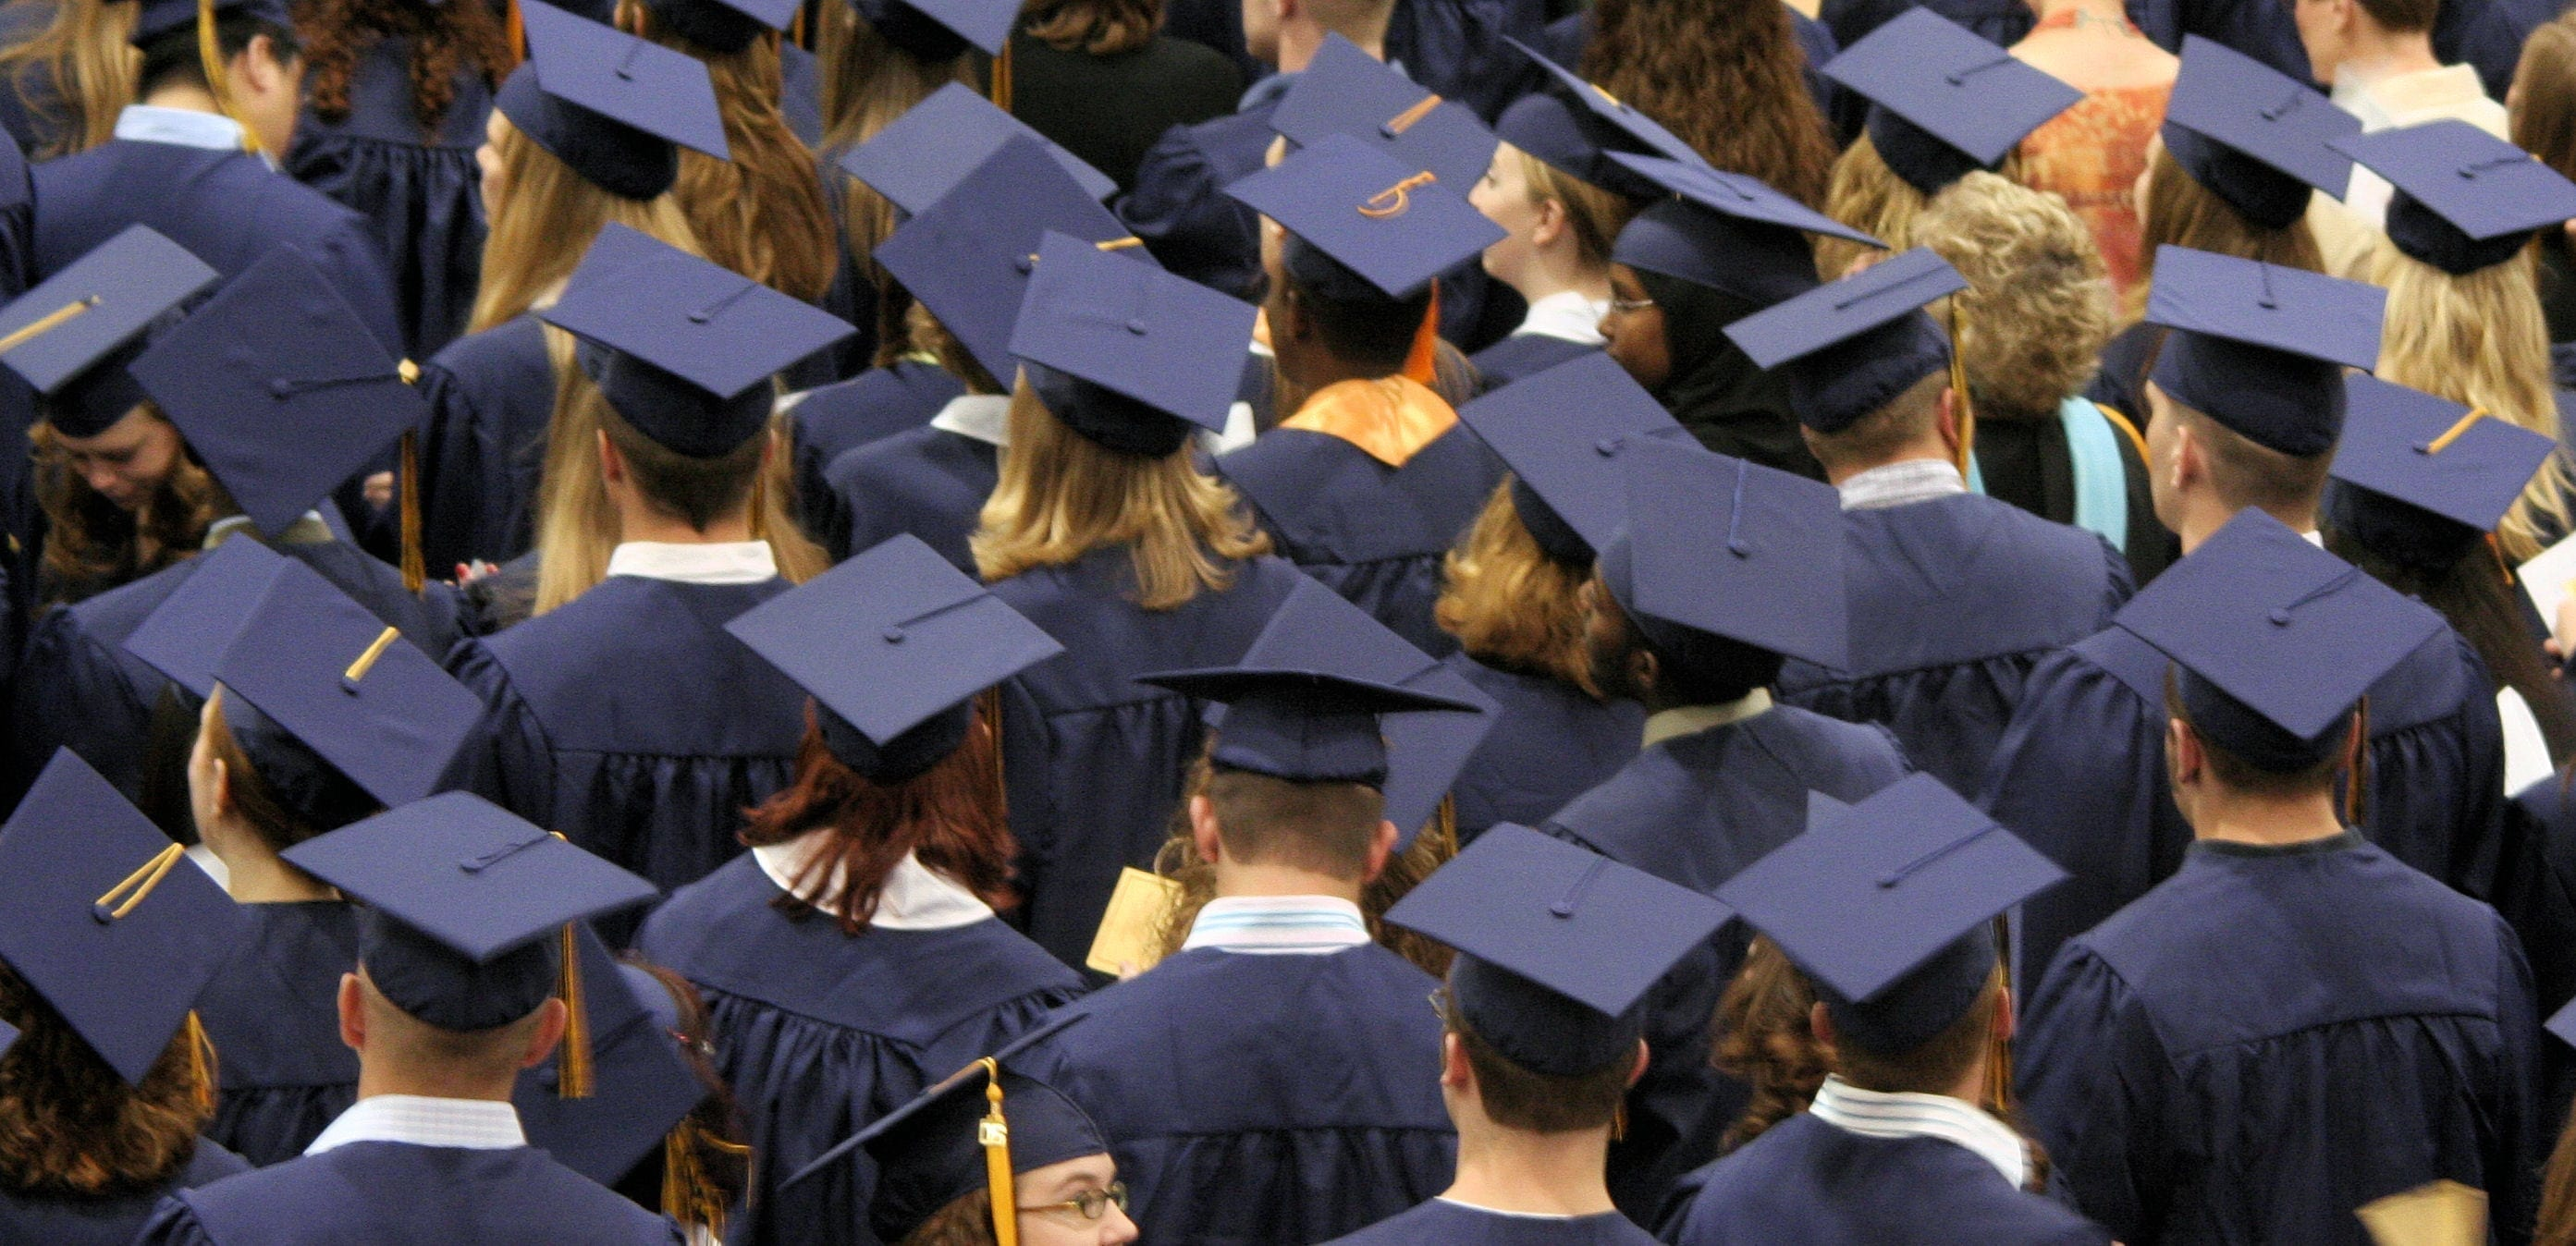 Petition process allows students to get diploma without passing graduation tests